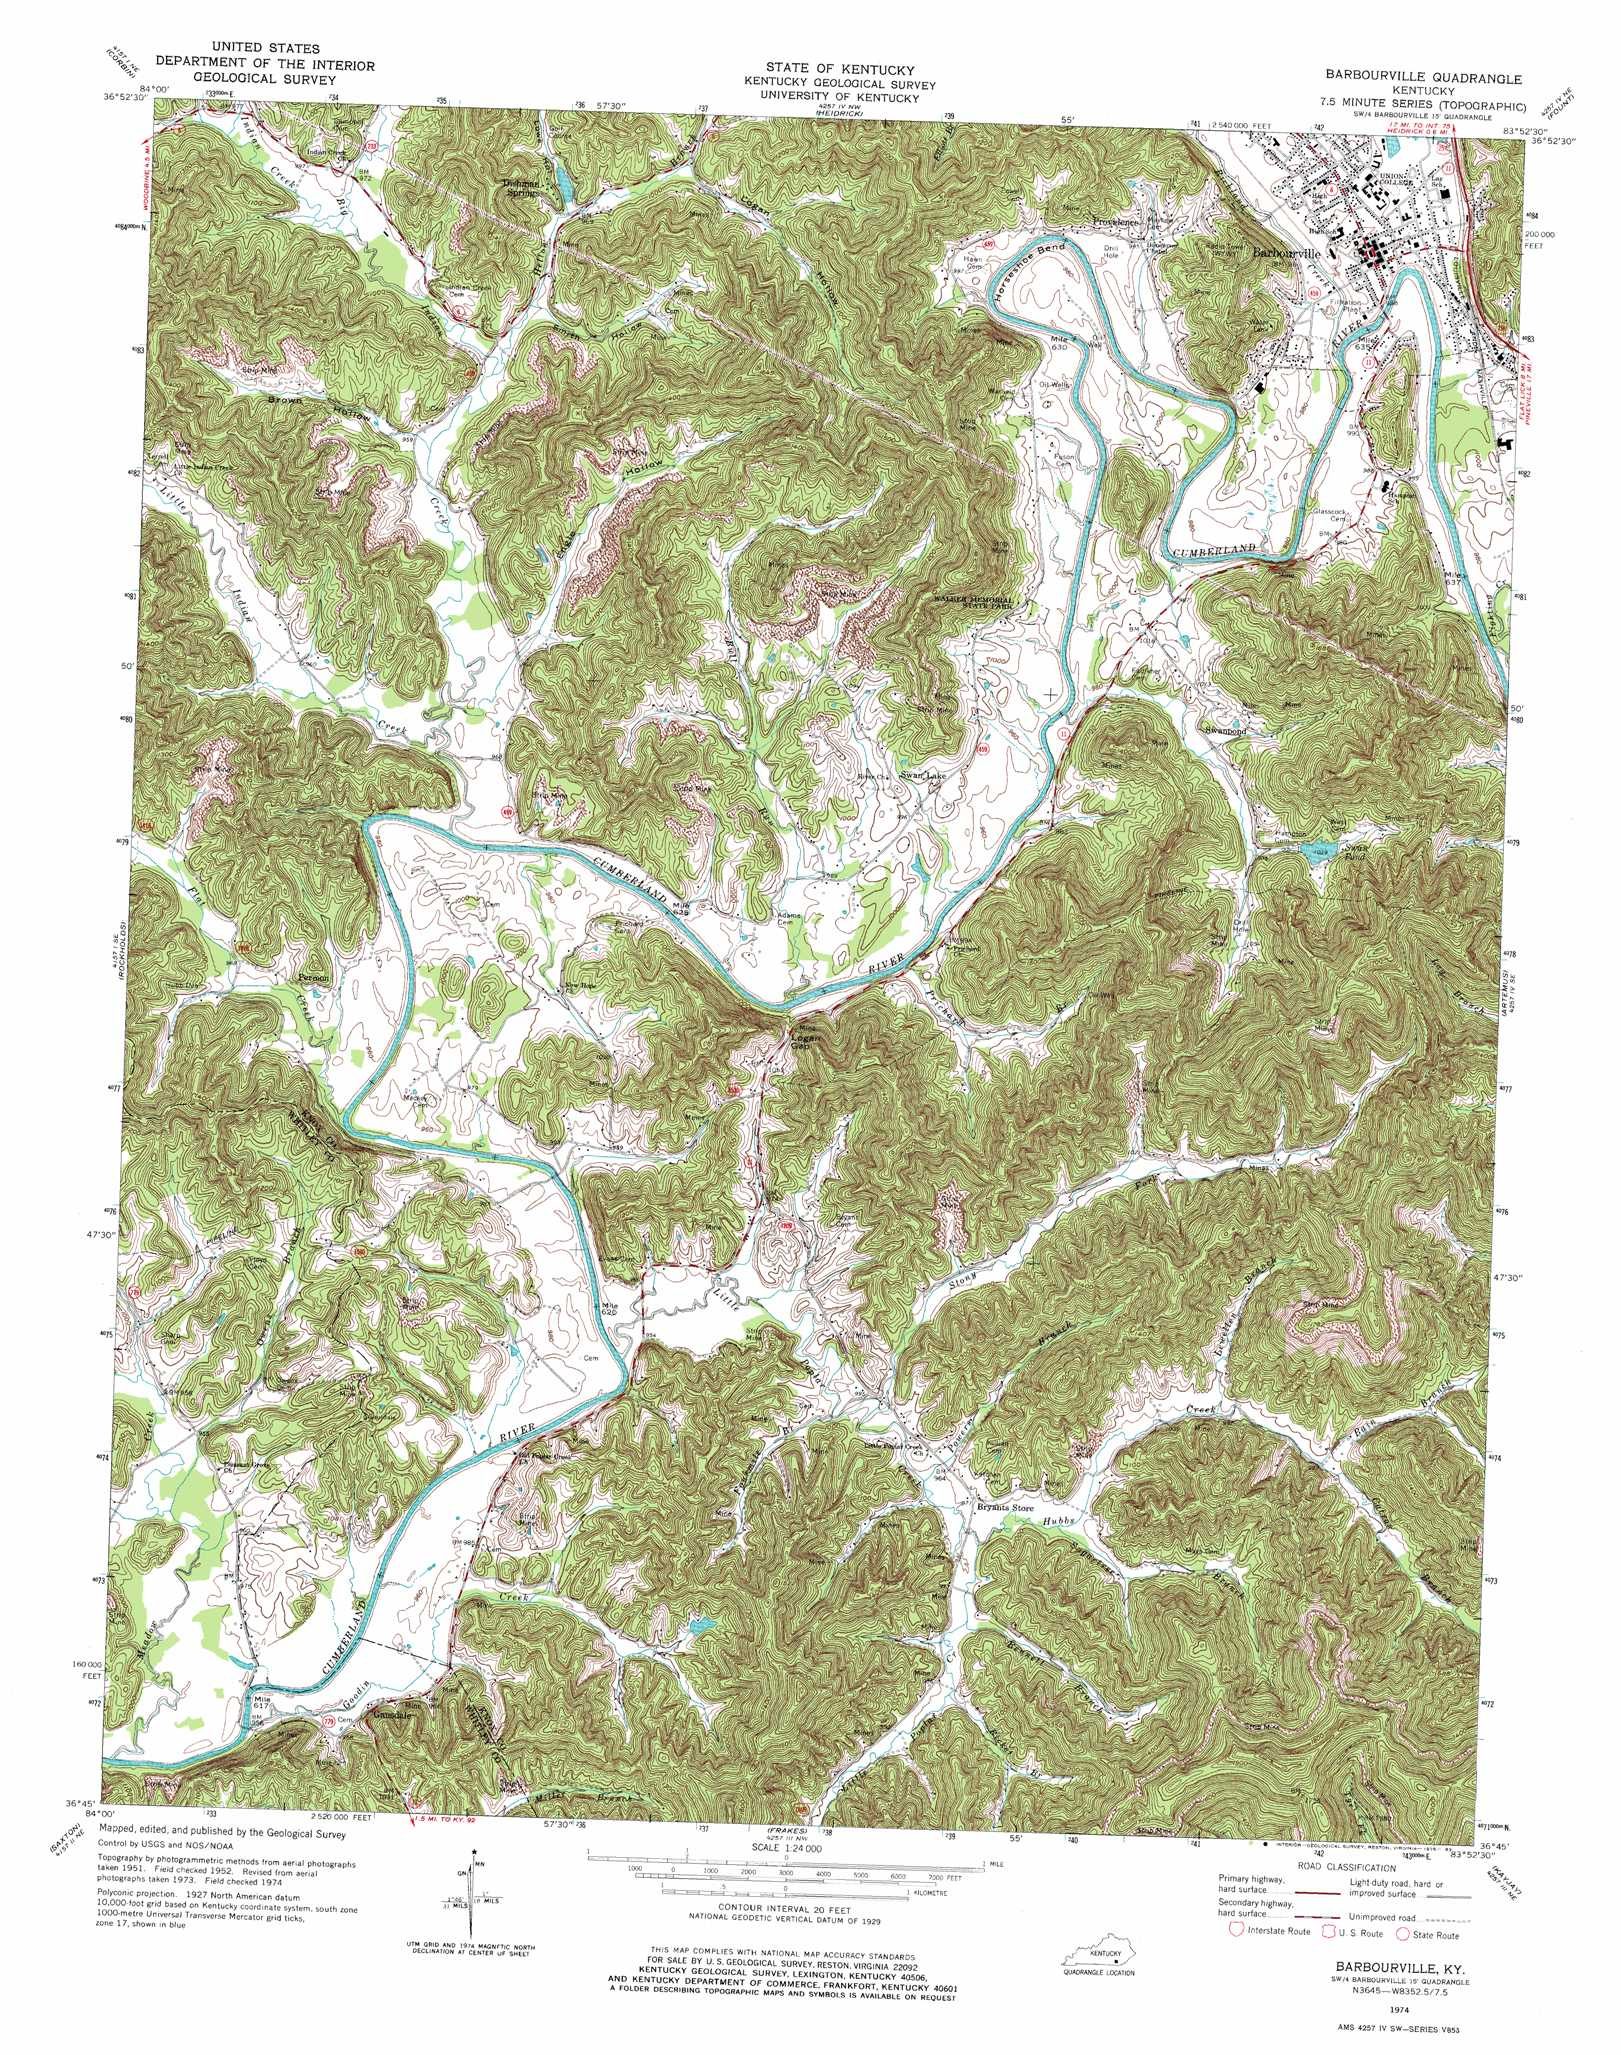 Barbourville Topographic Map KY  USGS Topo Quad 36083g8